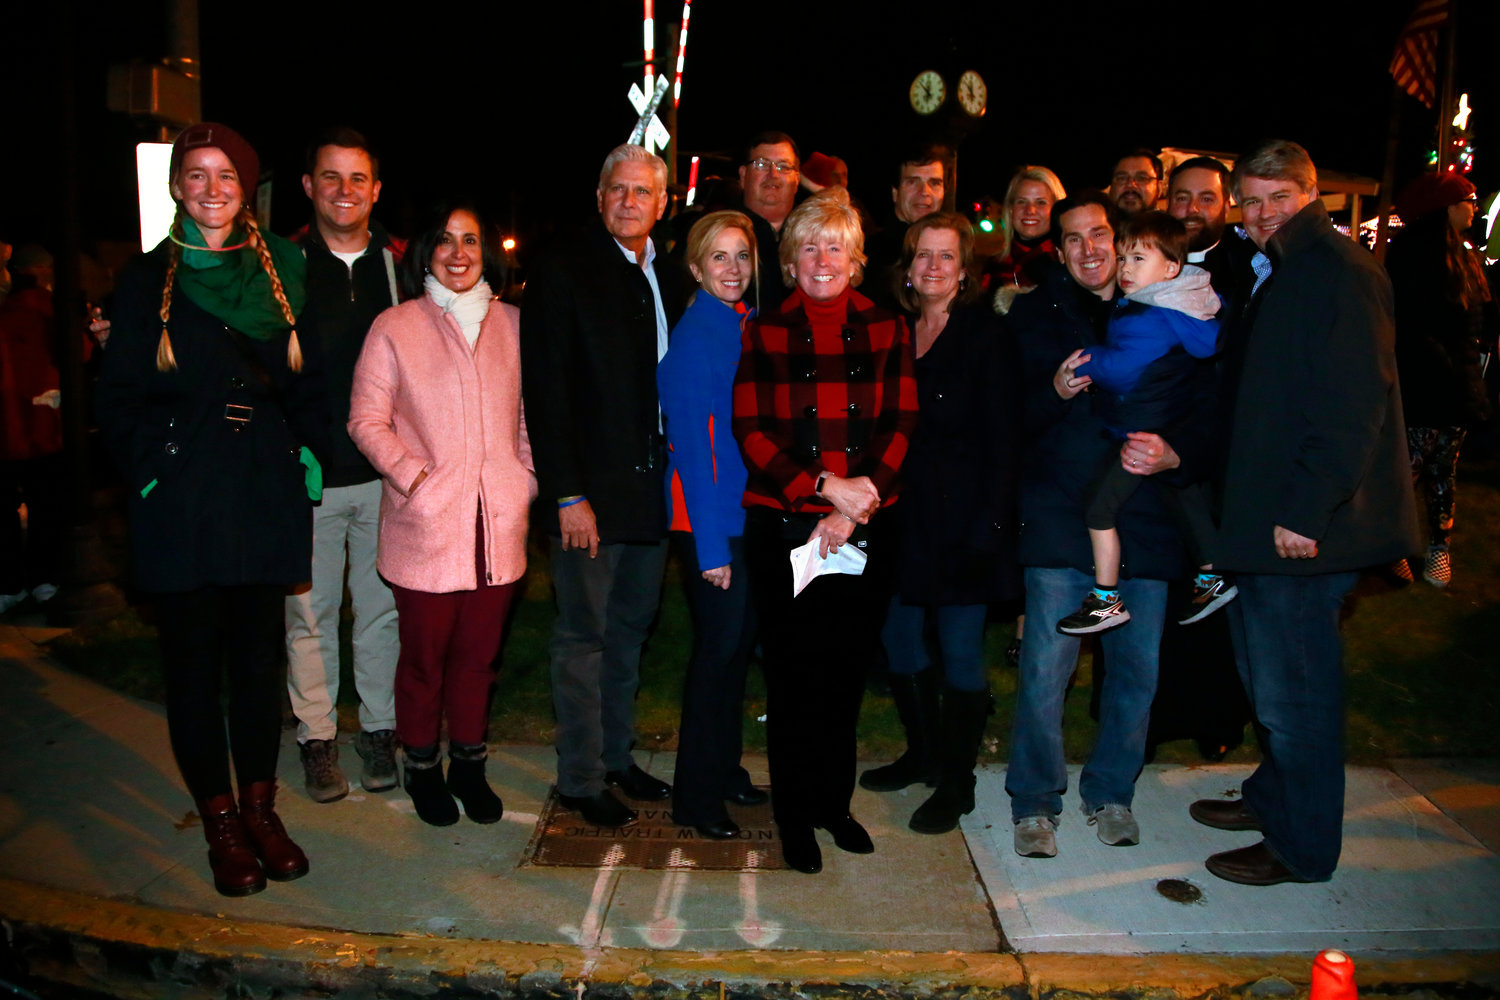 Malverne Mayor Patti McDonald was accompanied by both community and local elected leaders at the village's tree lighting.